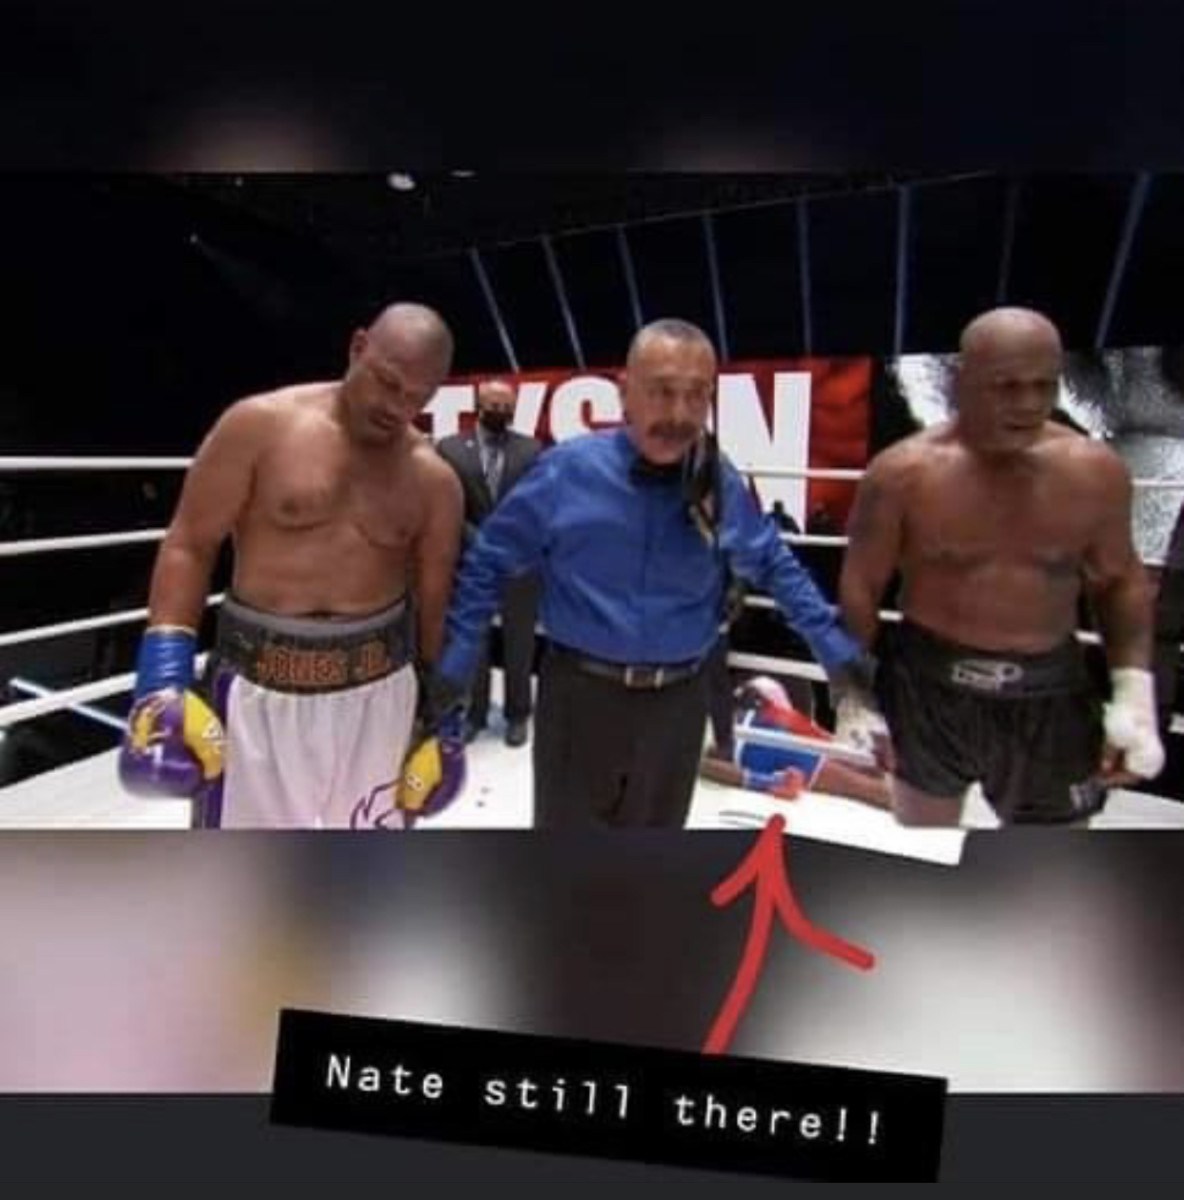 After the main event of Roy Jones Jr vs Mike Tyson, this meme insist that Nate Robinson was in the ring the entire time.